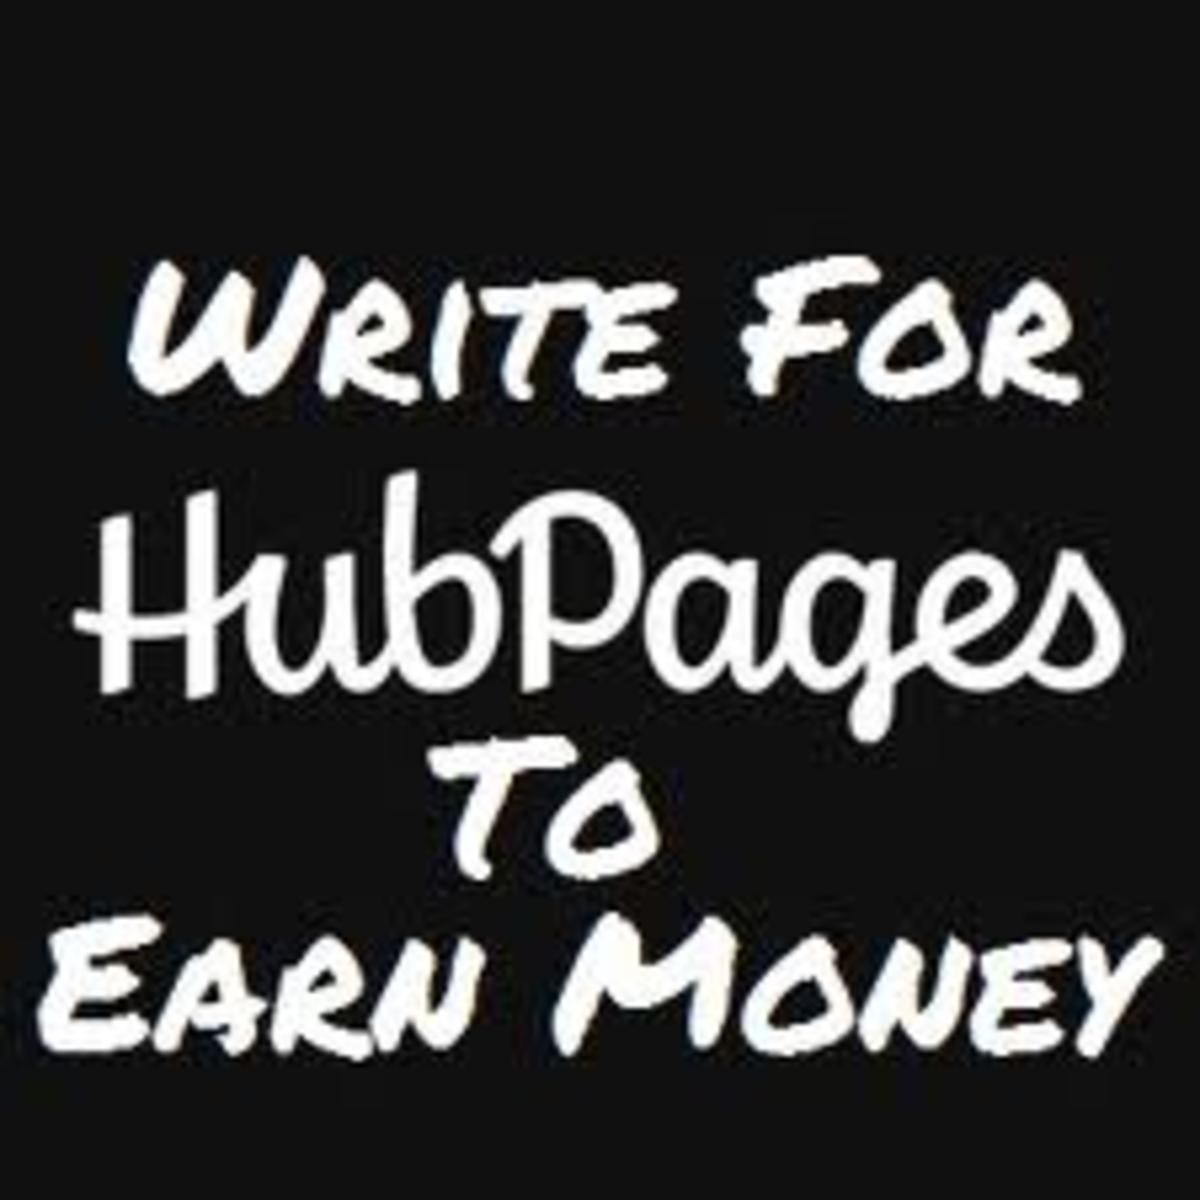 100000-hits-85-hubs-the-story-of-my-nineteen-months-stay-in-hubpages